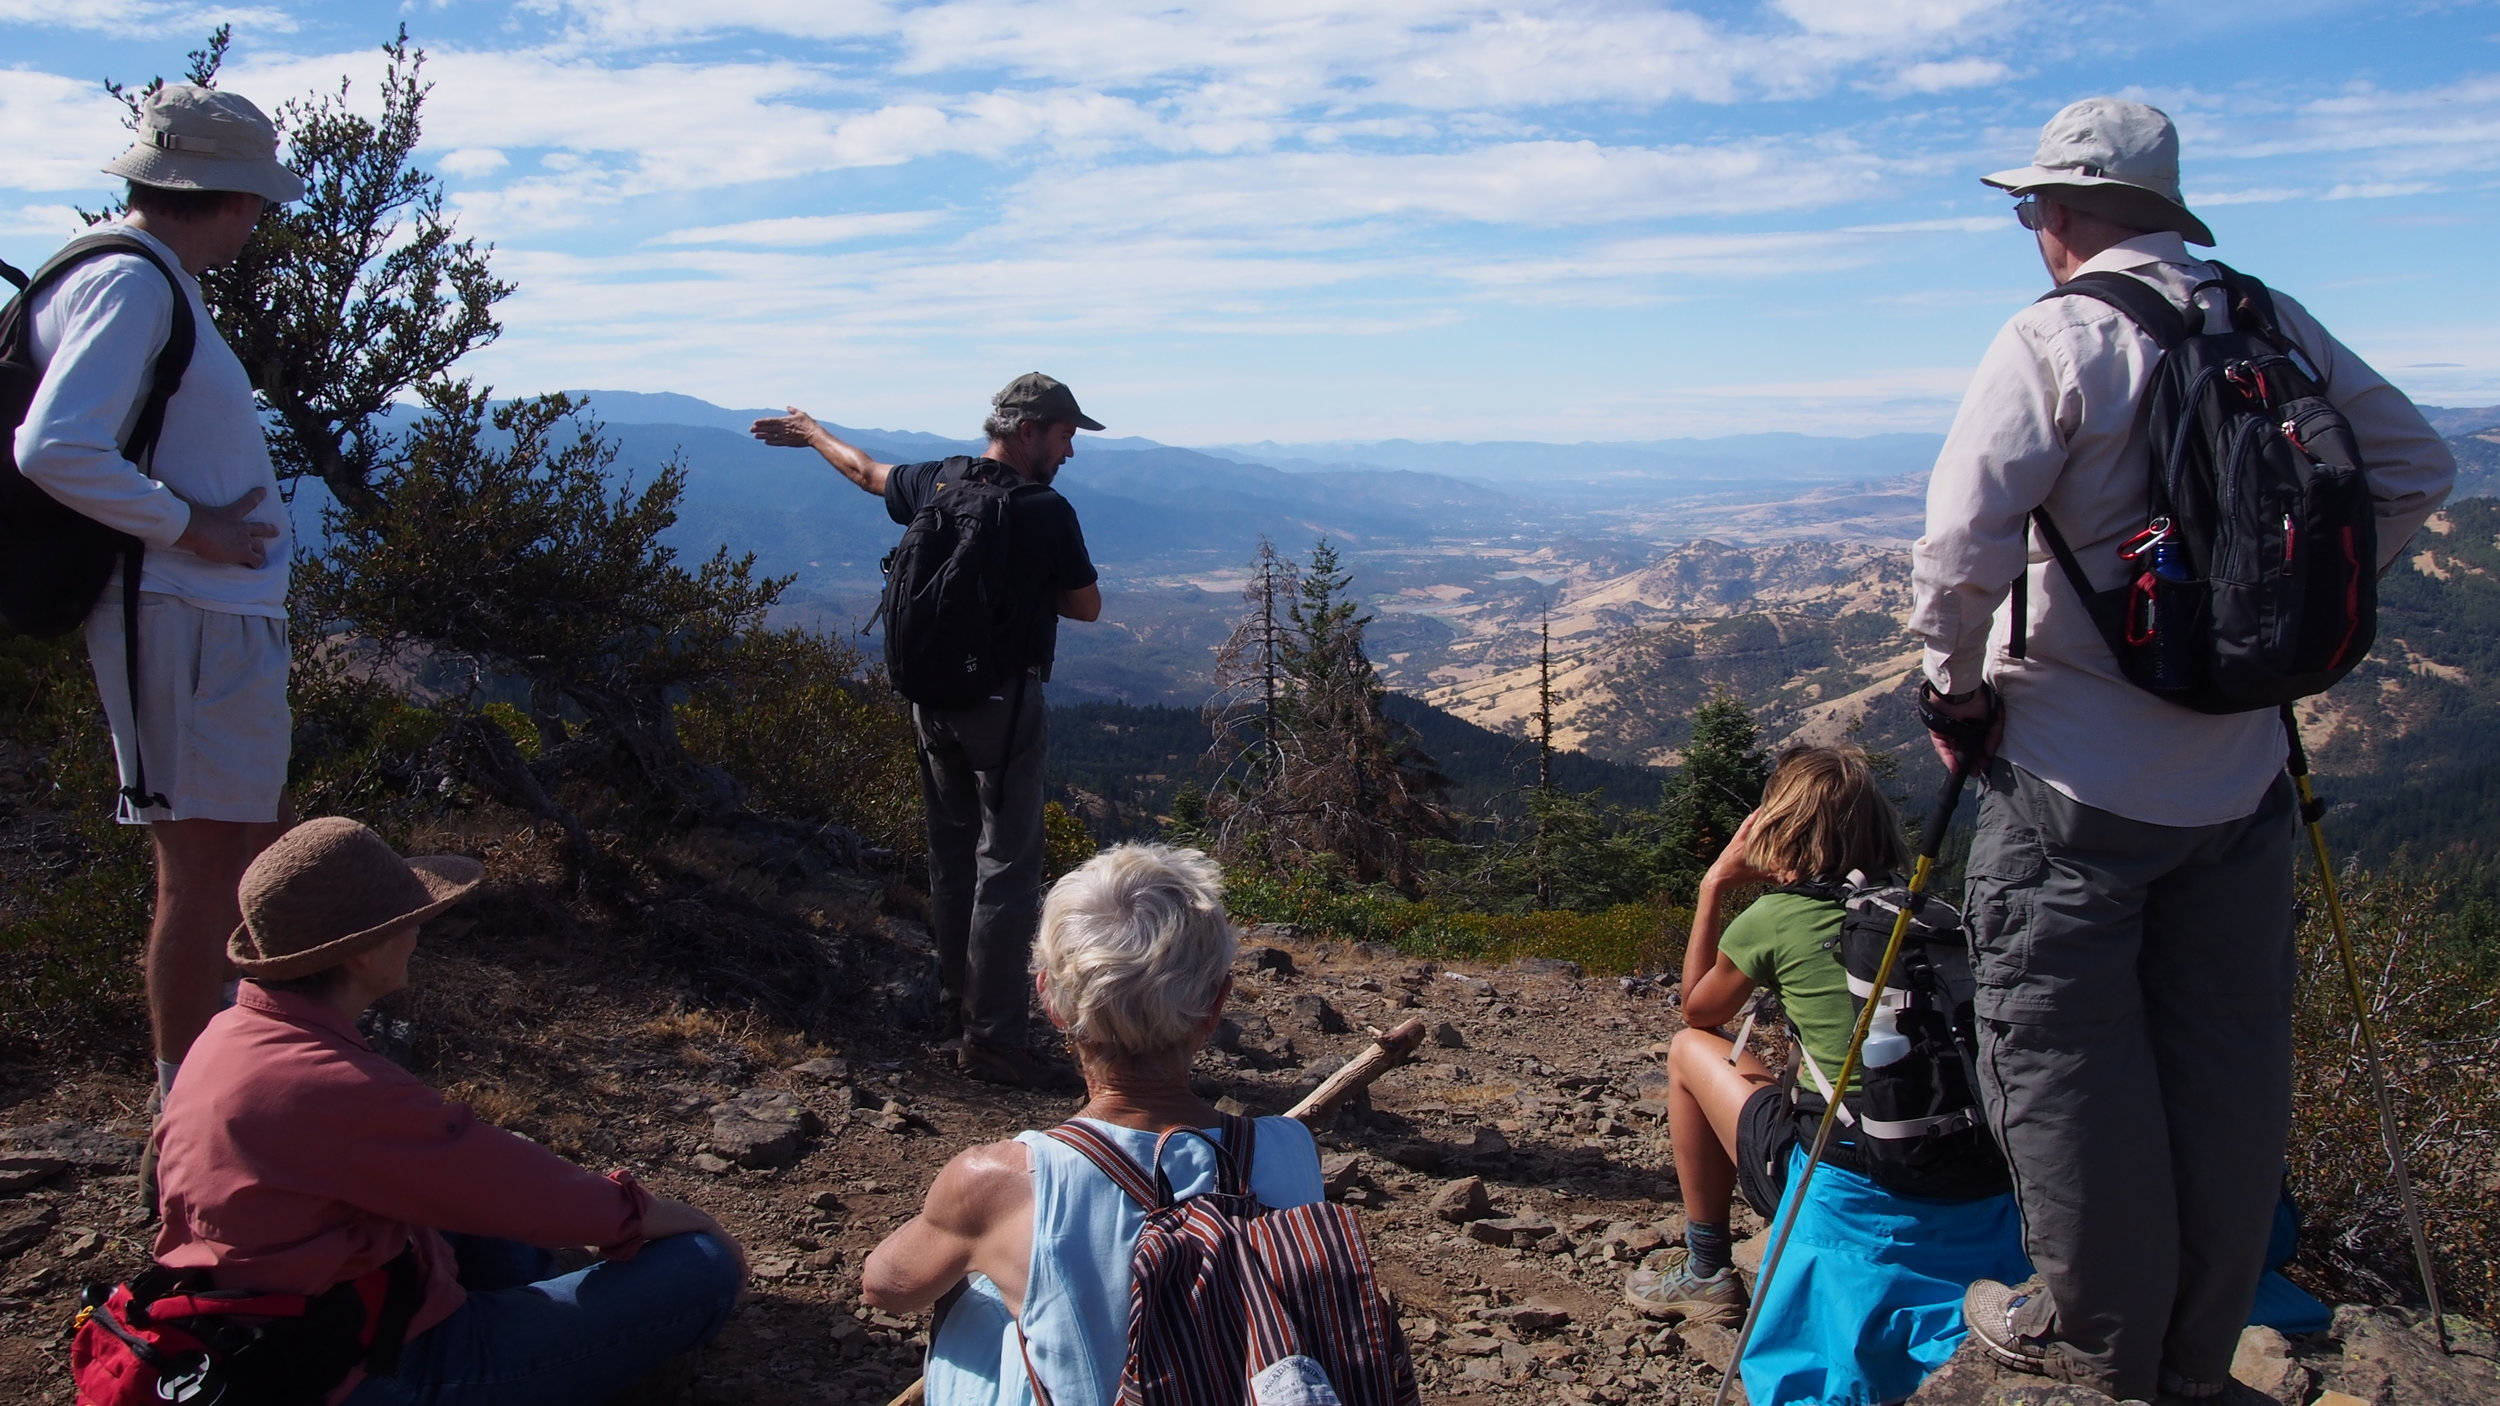 Poet-ornithologist  Pepper Trail (r) orients hikers to the view from the top of Hobart Bluff.